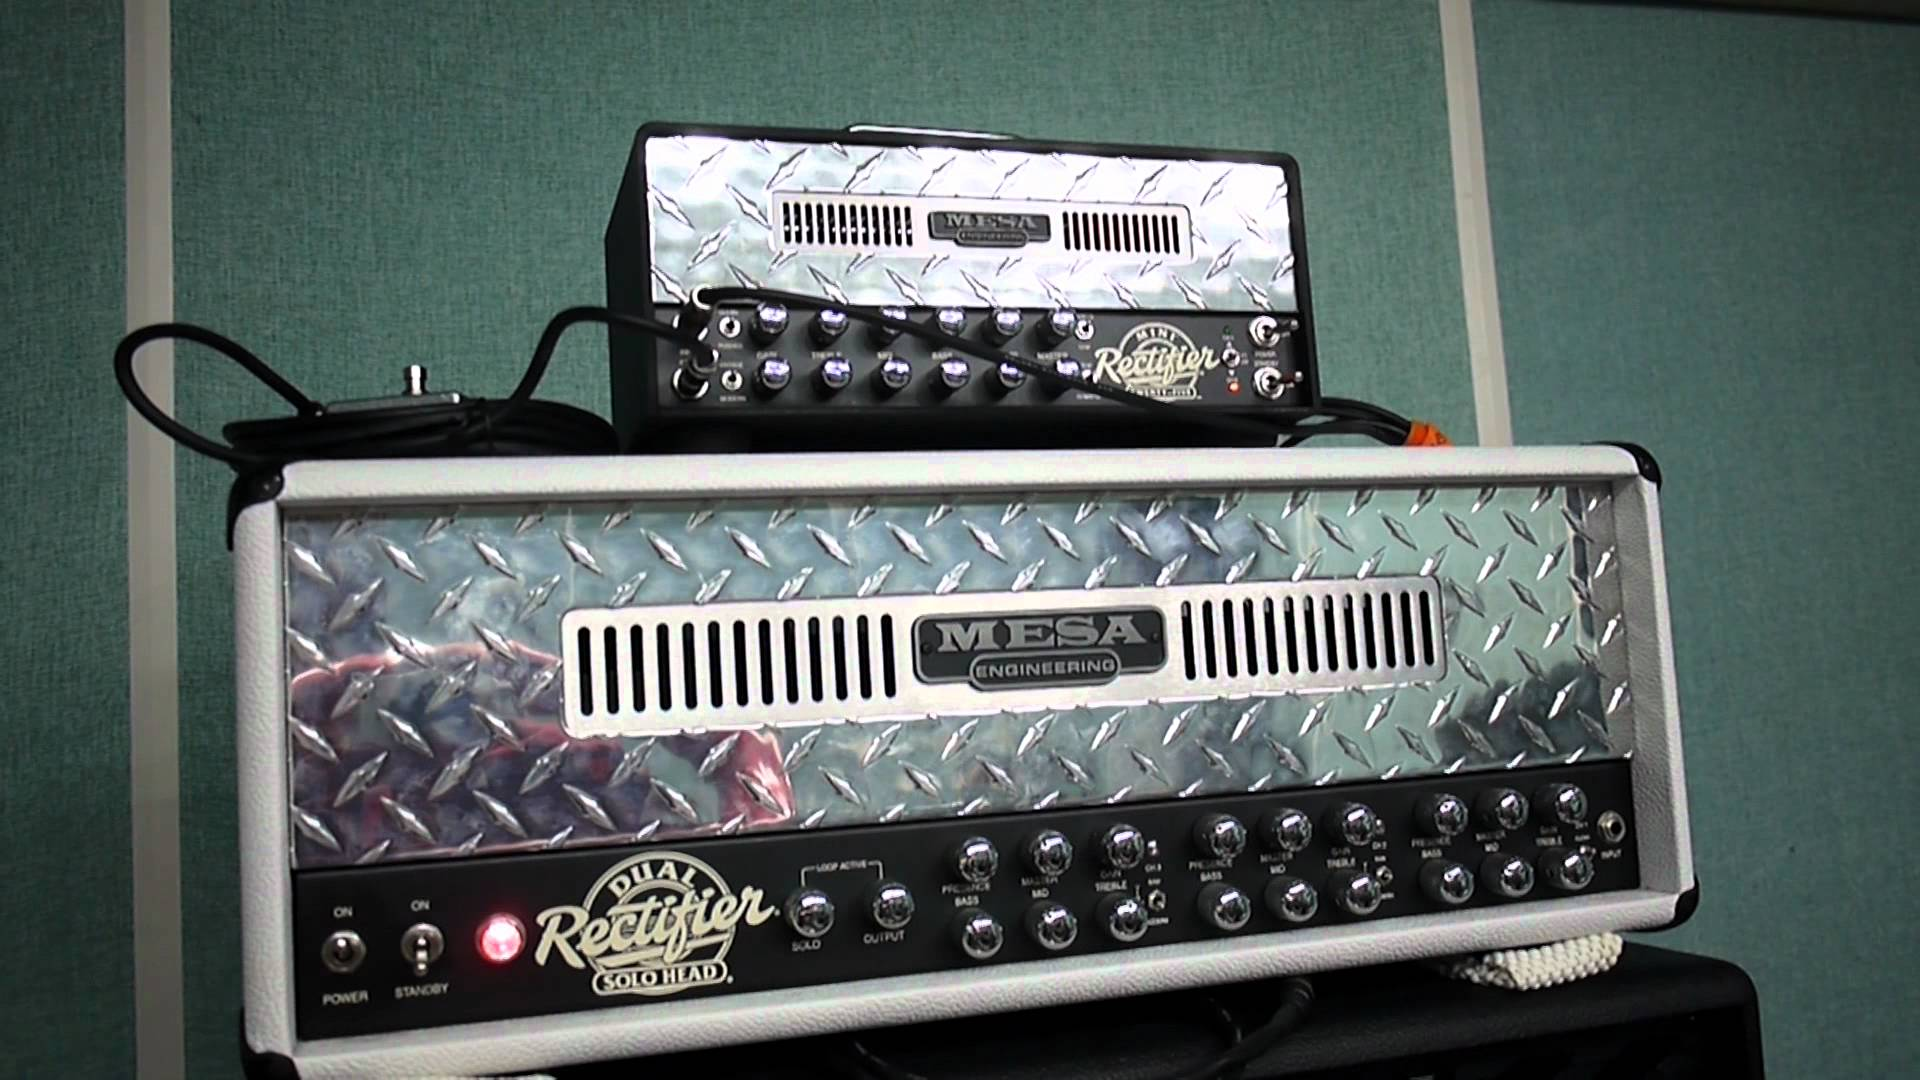 On top, the Mini Rectifier lunchbox amp from Mesa Boogie, sitting on top of it's big brother, the 100W Dual Rectifier.